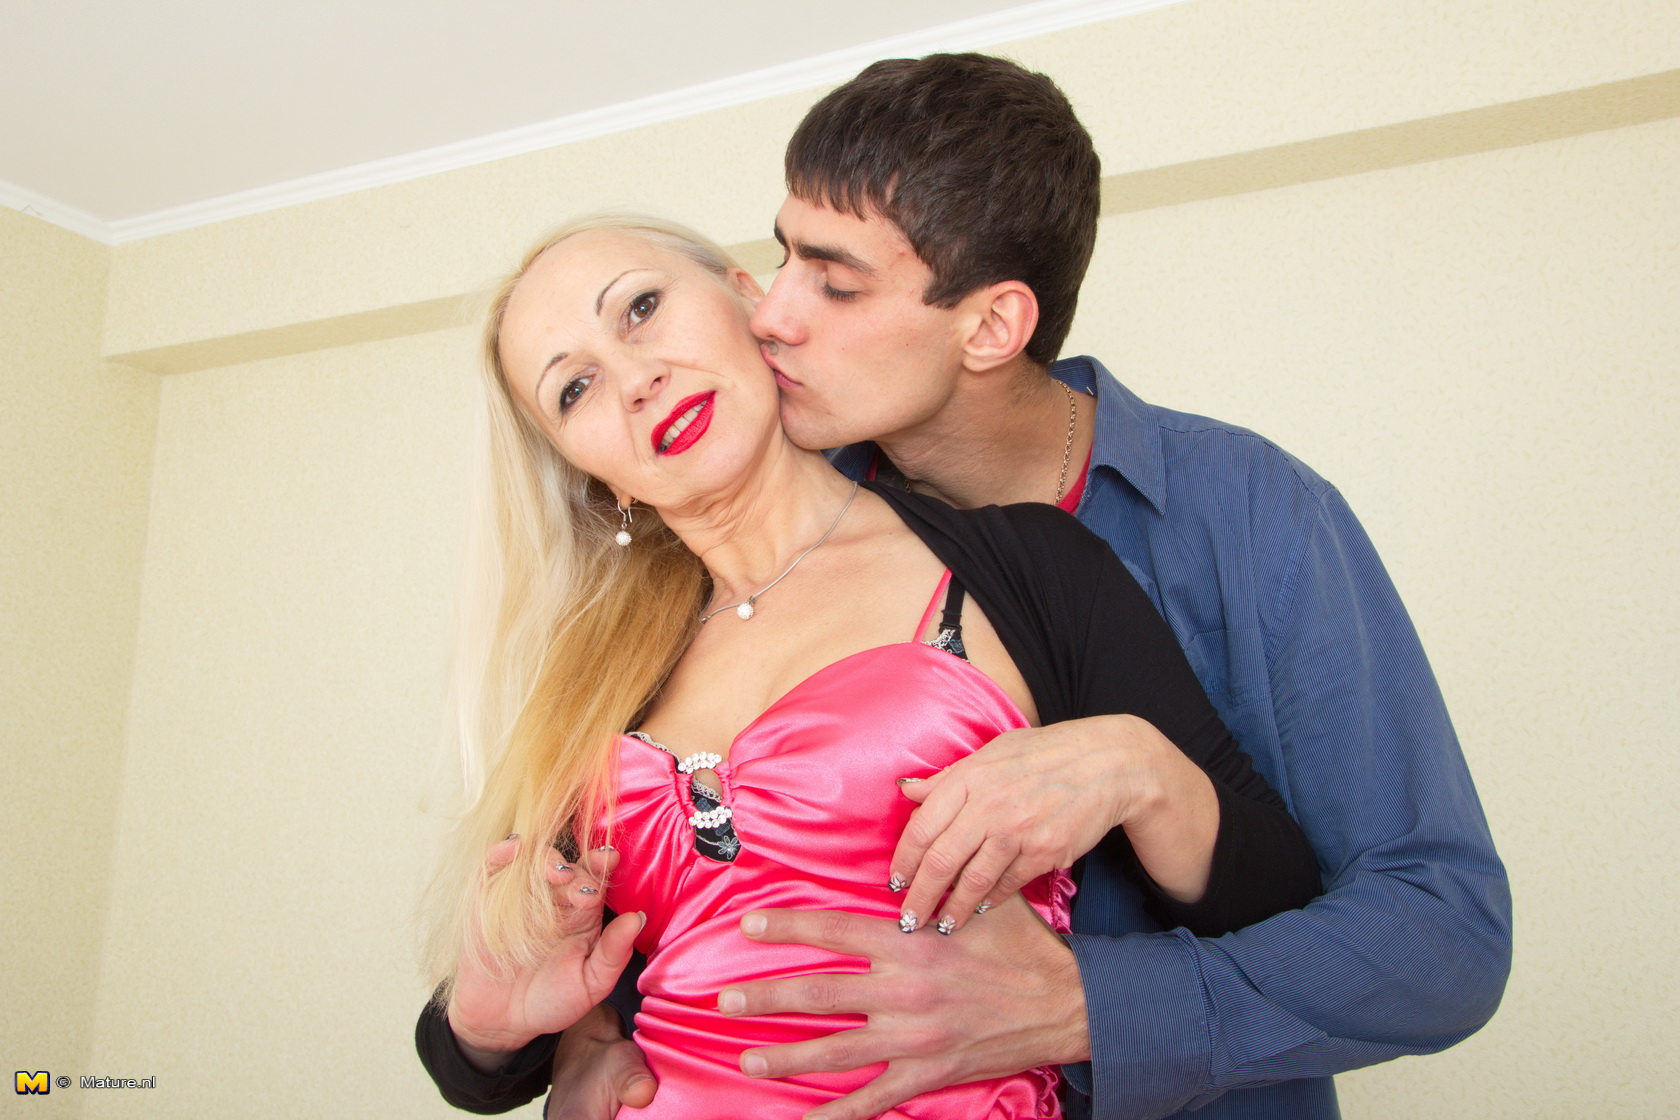 his first pussy – grandmother helped him loosing his virginity #1